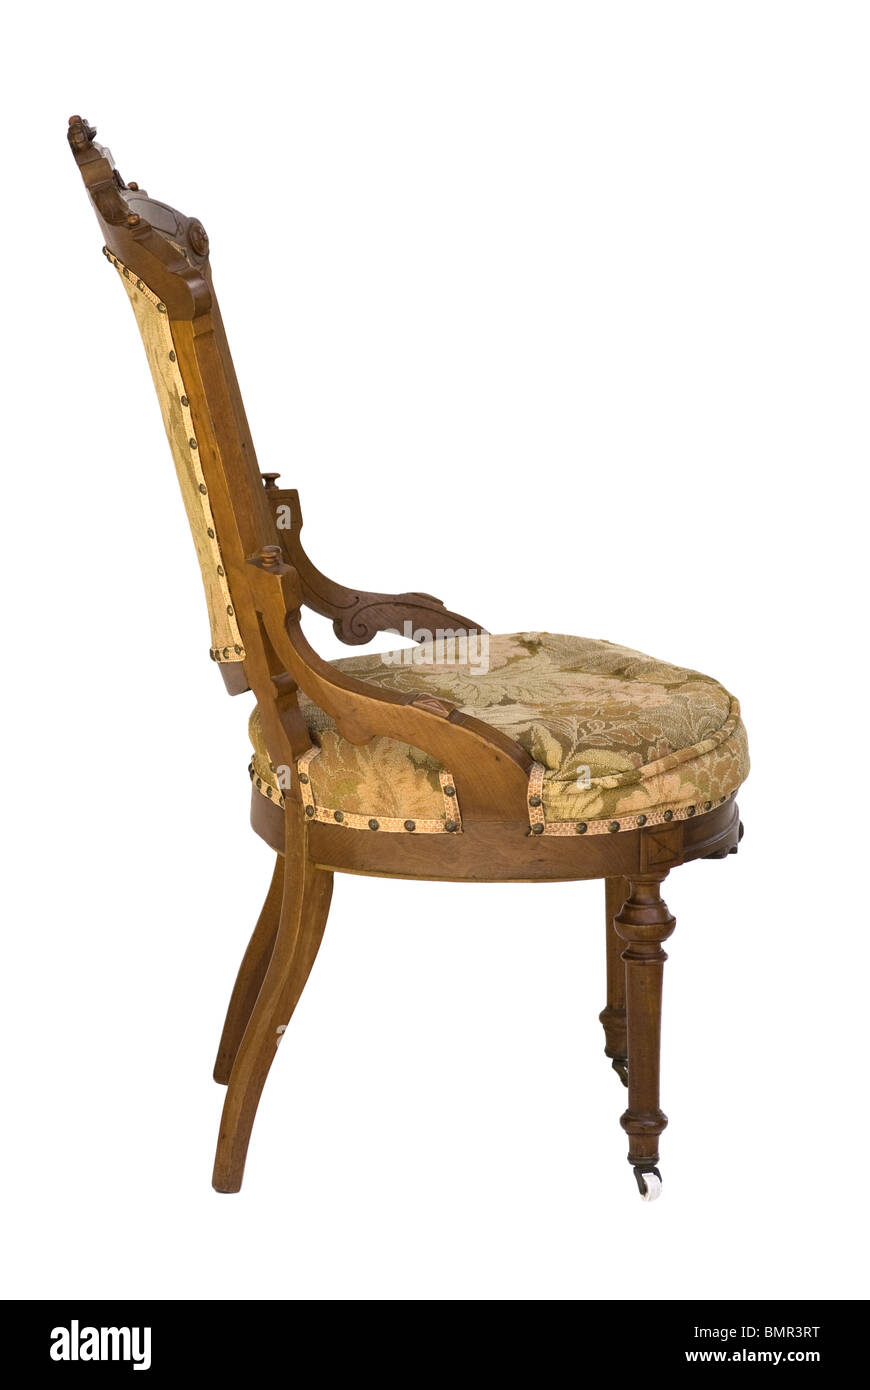 Eastlake Victorian antique wood carved upholstered chair from a side view. Associated with the Victorian era. Isolated - Stock Image